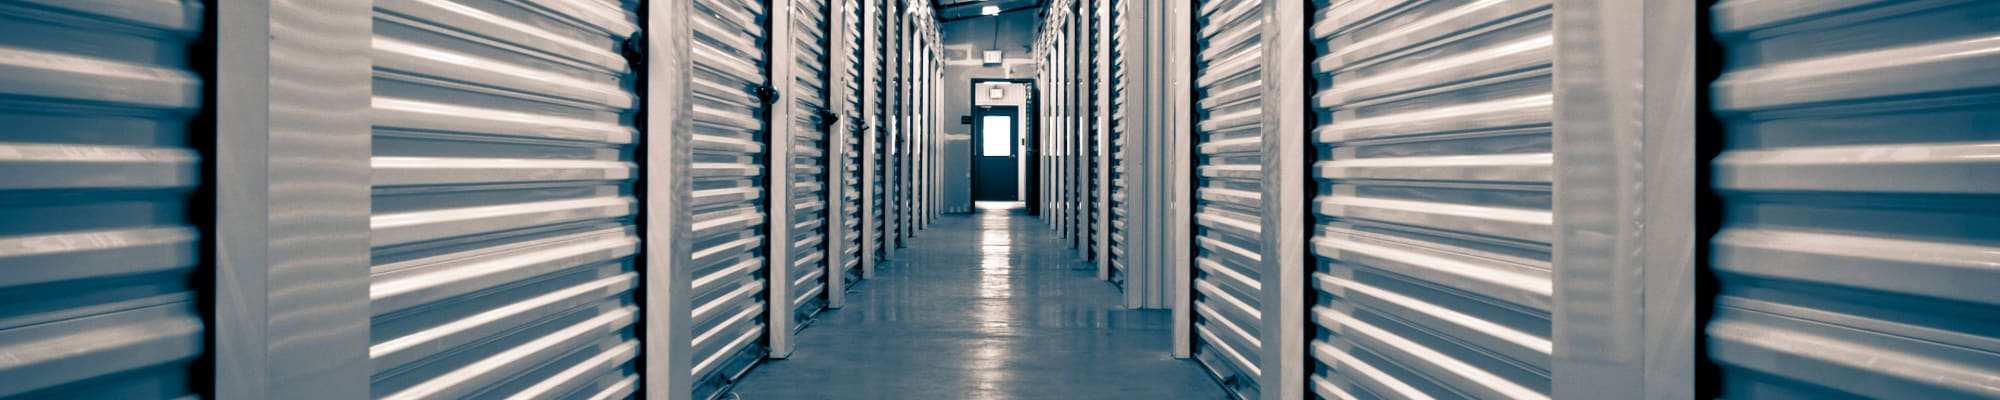 Unit sizes and prices Store It All Self Storage - Townlake in Laredo, Texas